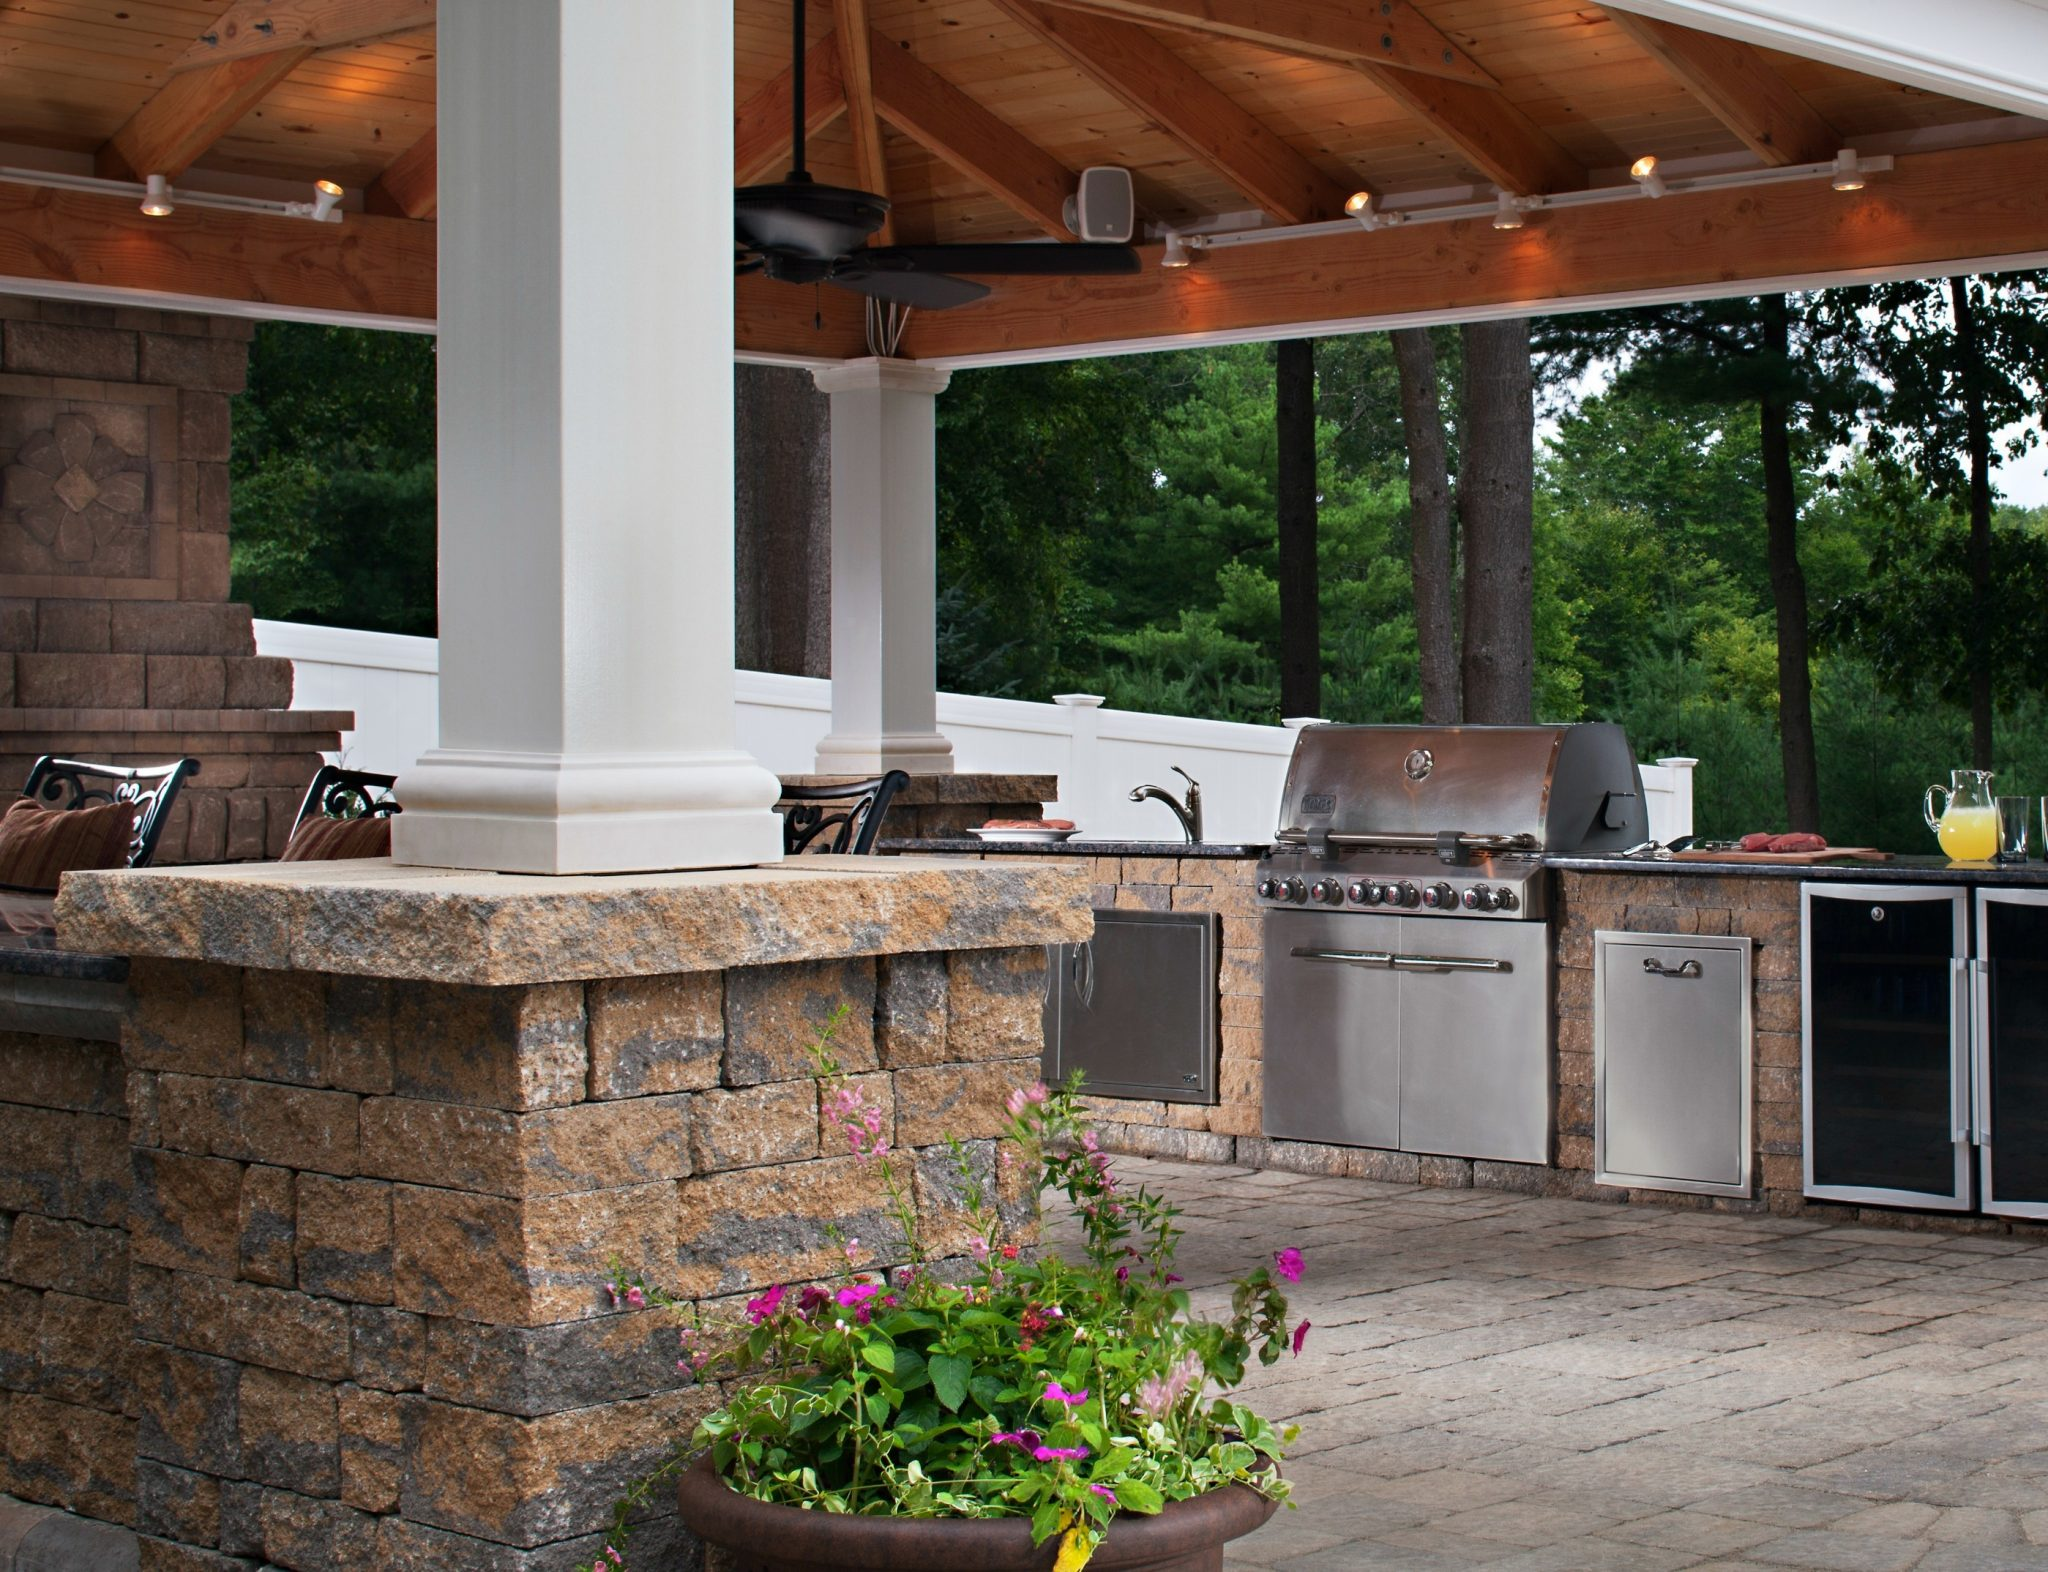 Outdoor kitchen trends 9 hot ideas for your backyard for Outdoor kitchen ideas pictures